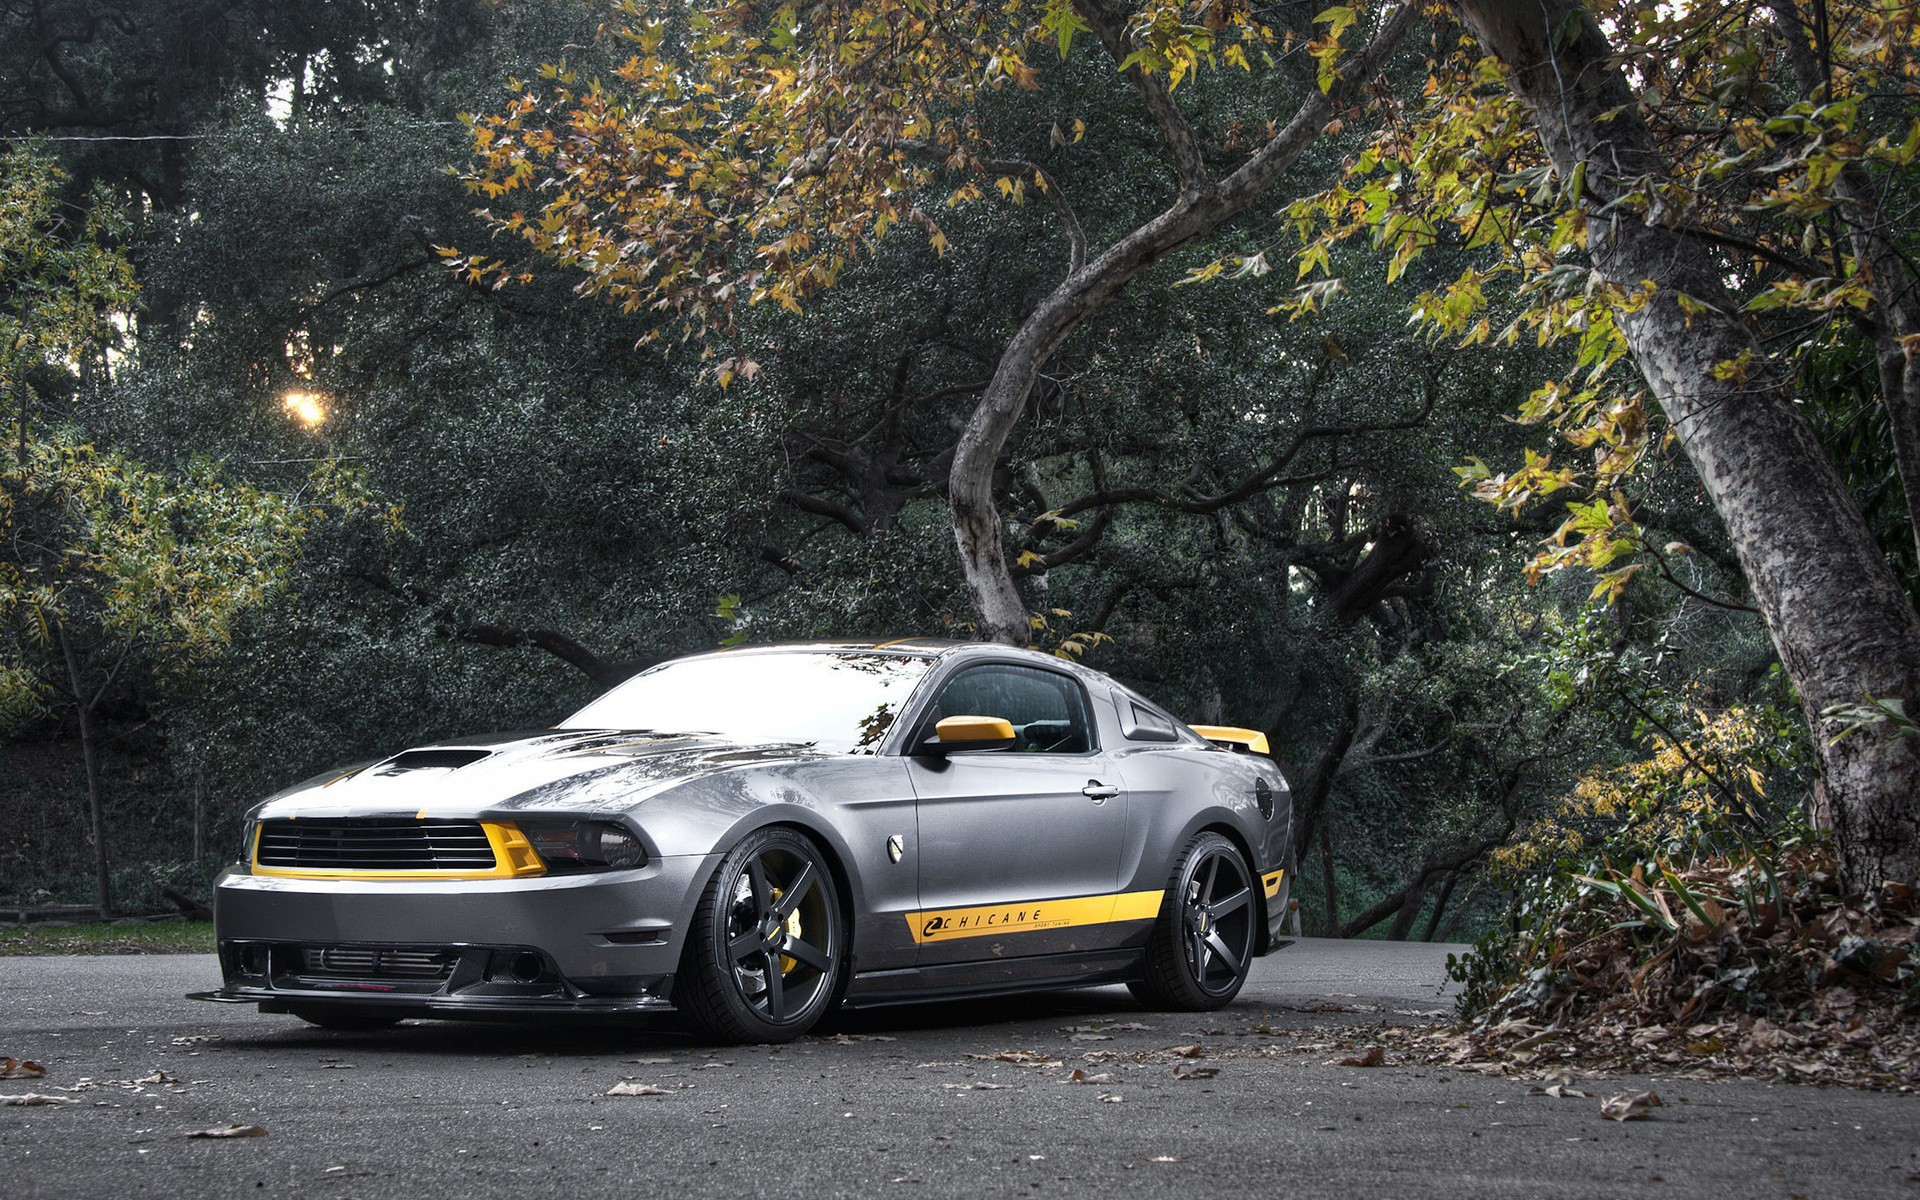 Ford Mustang muscle car vehicles wallpaper wallpapers and images 1920x1200